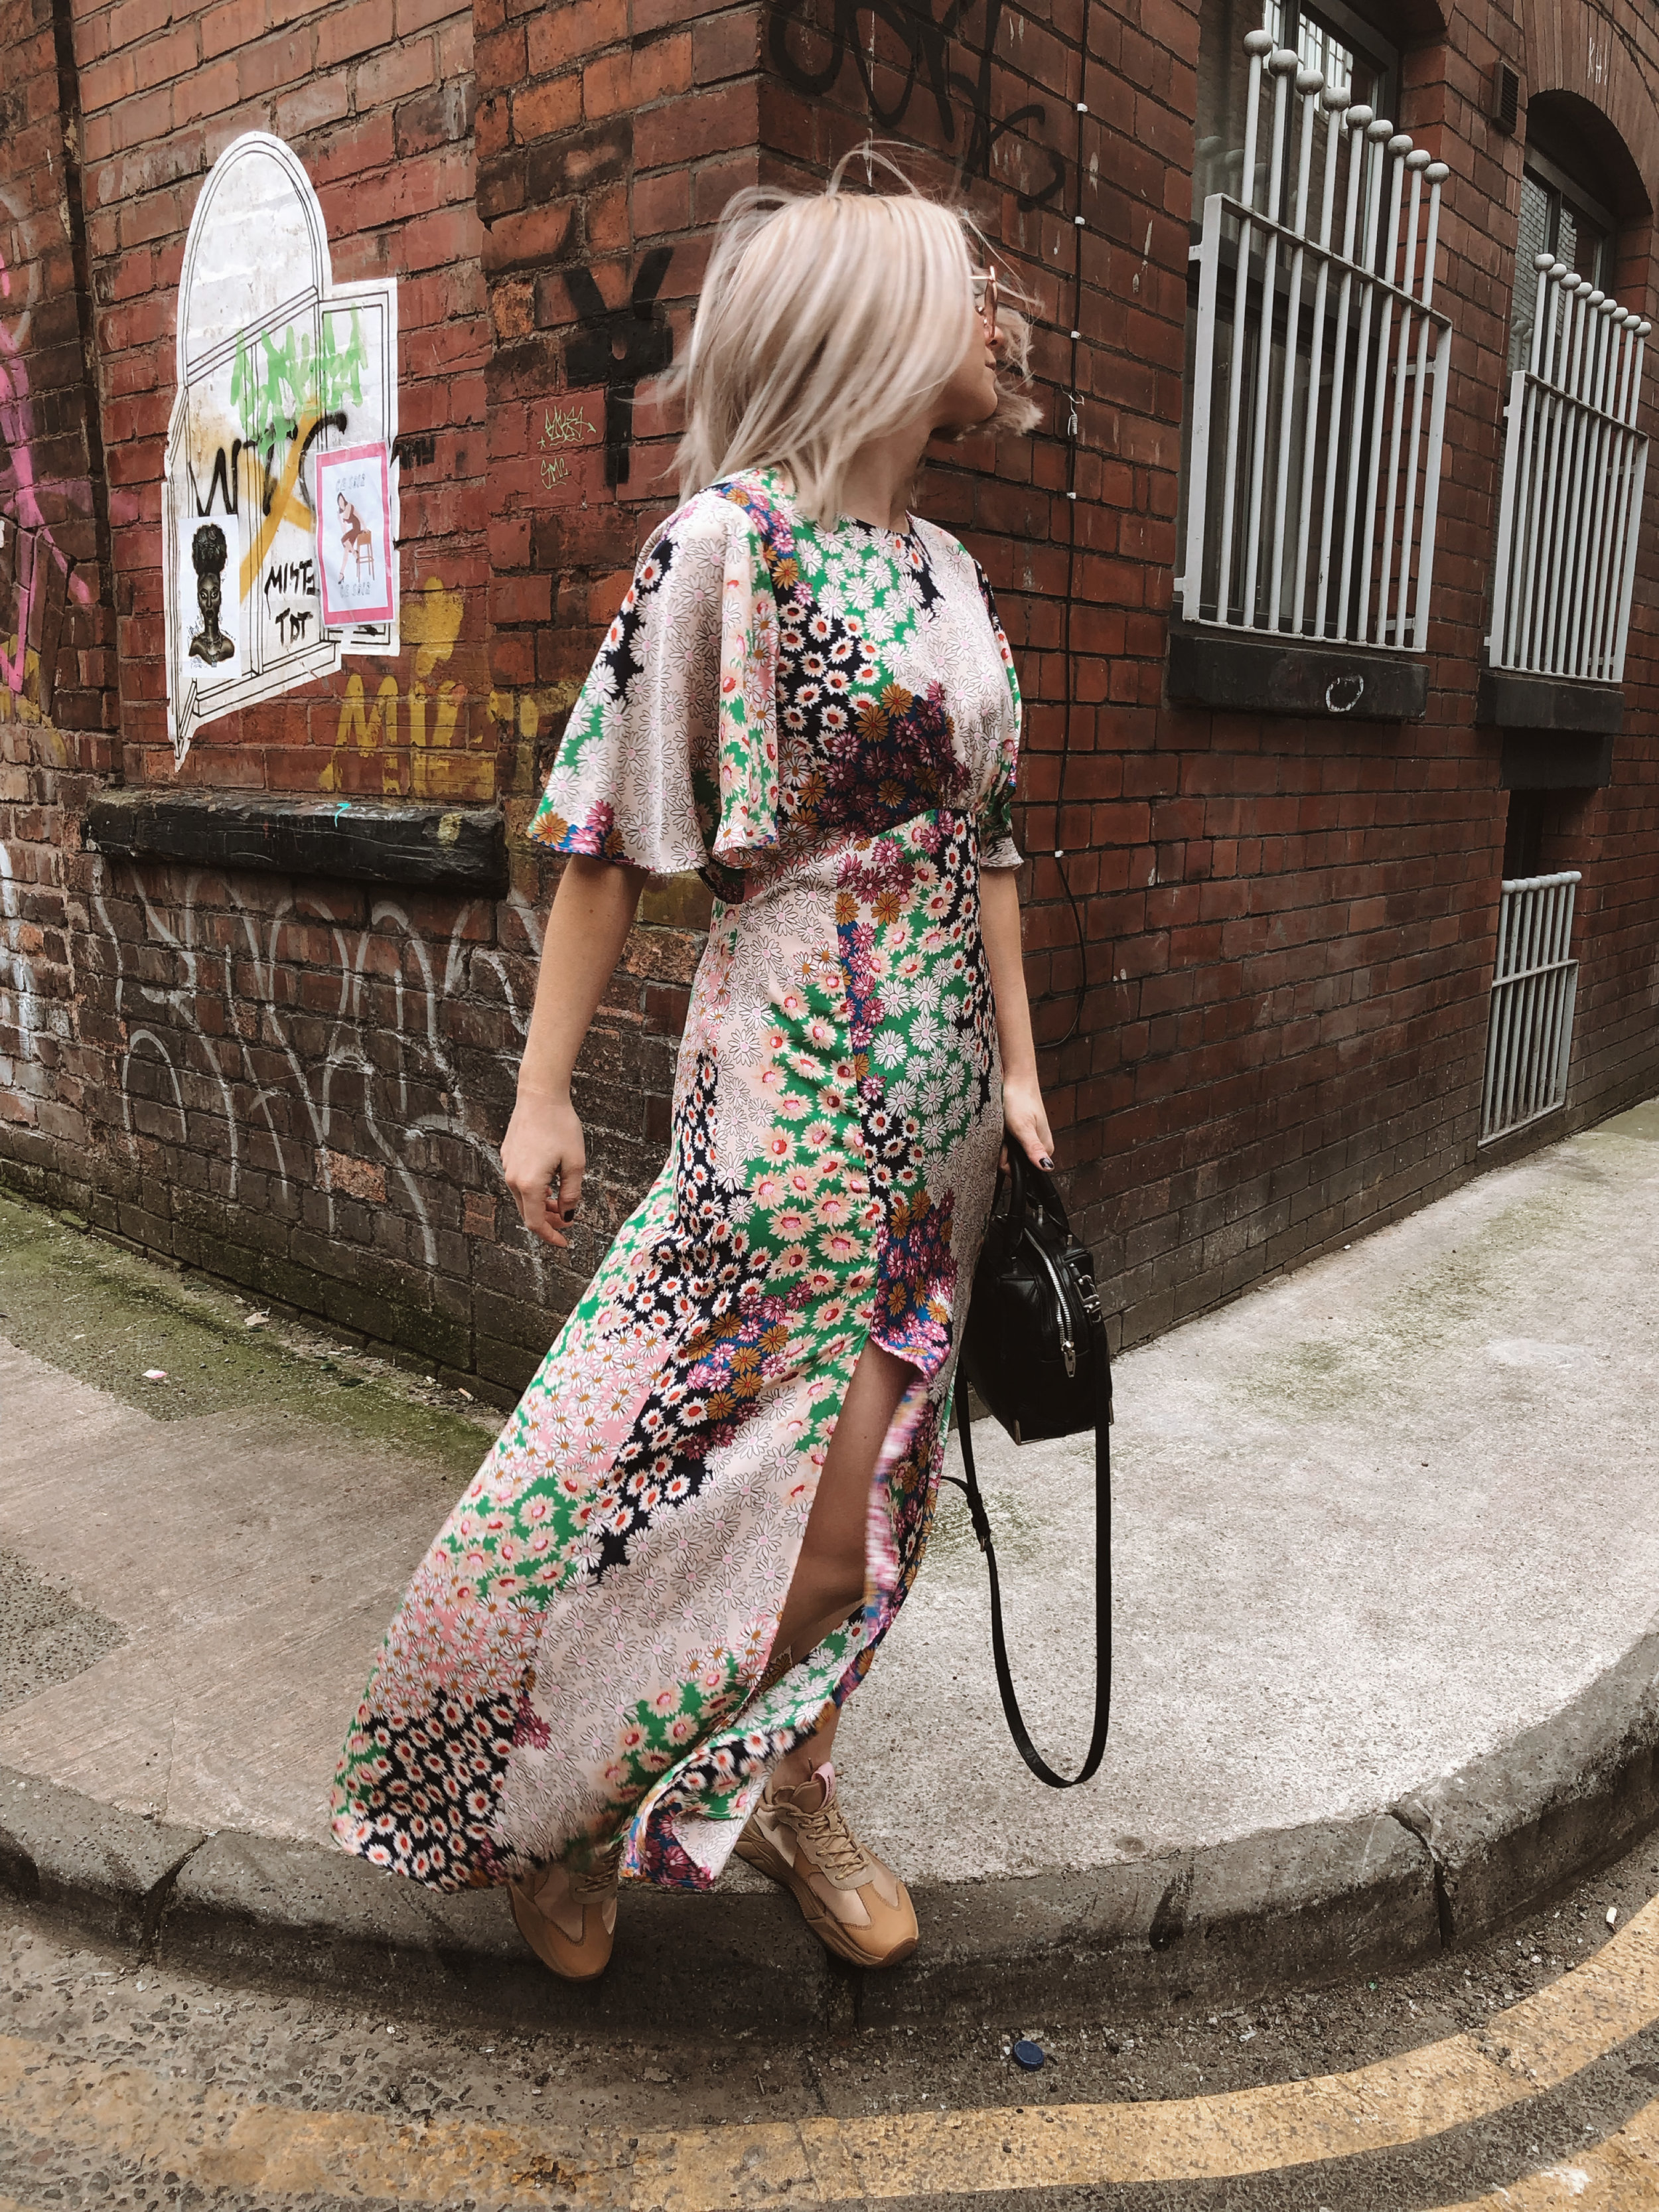 topshop auston dress, topshop floral dress, scotch and soda footwear, chunky trainers, summer dress, dresses and trainers, joey taylor, northern quarter 1